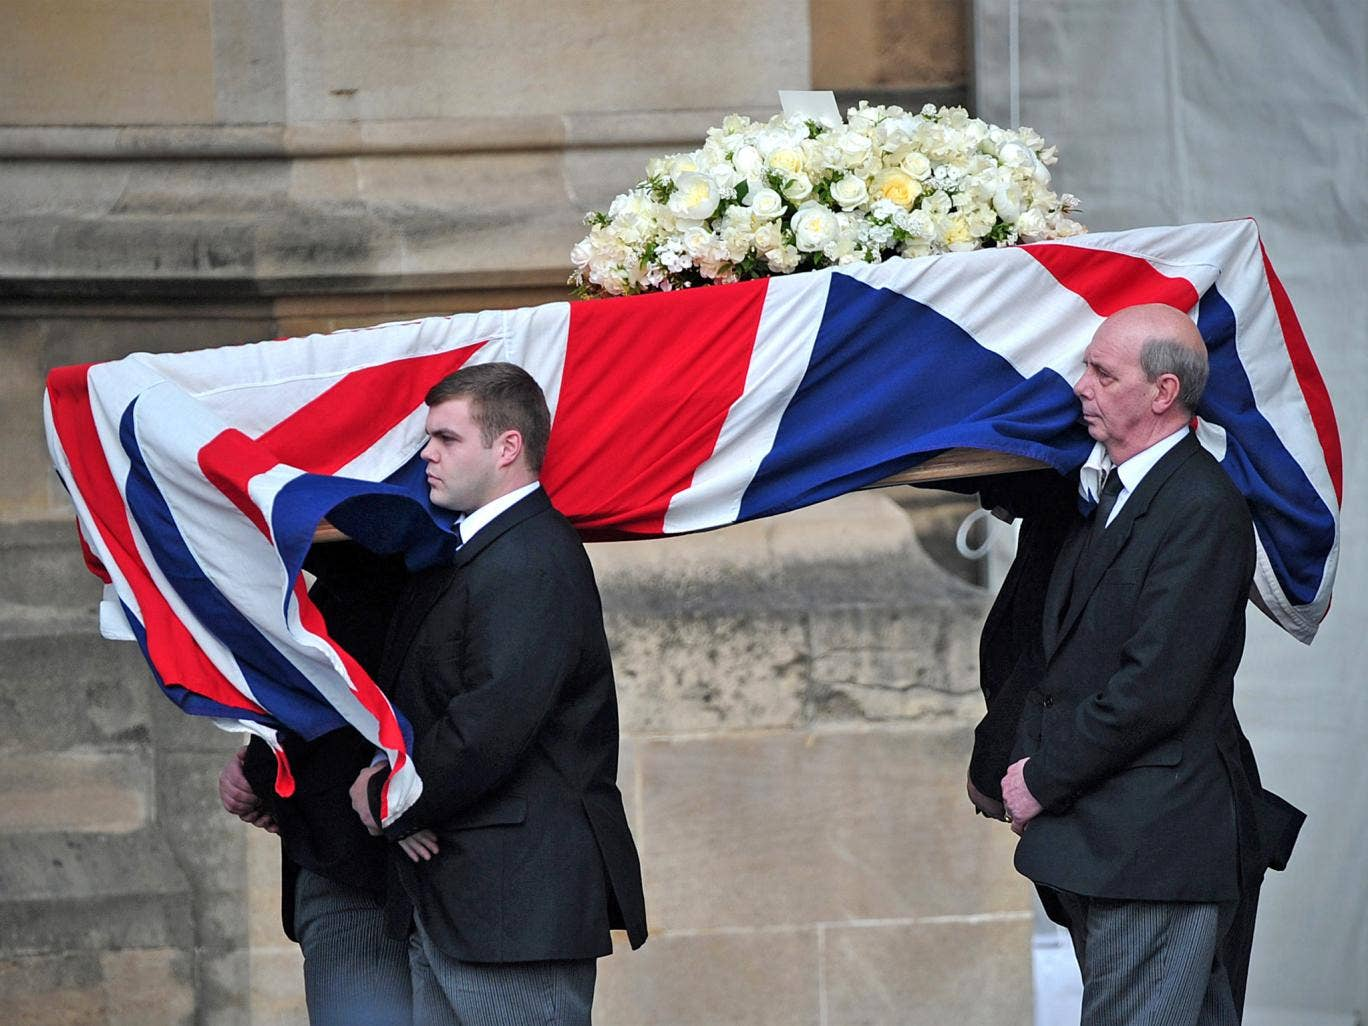 Pallbearers carry the coffin of Margaret Thatcher as it arrives to be laid at the Crypt Chapel of St Mary Undercoft in the Houses of Parliament